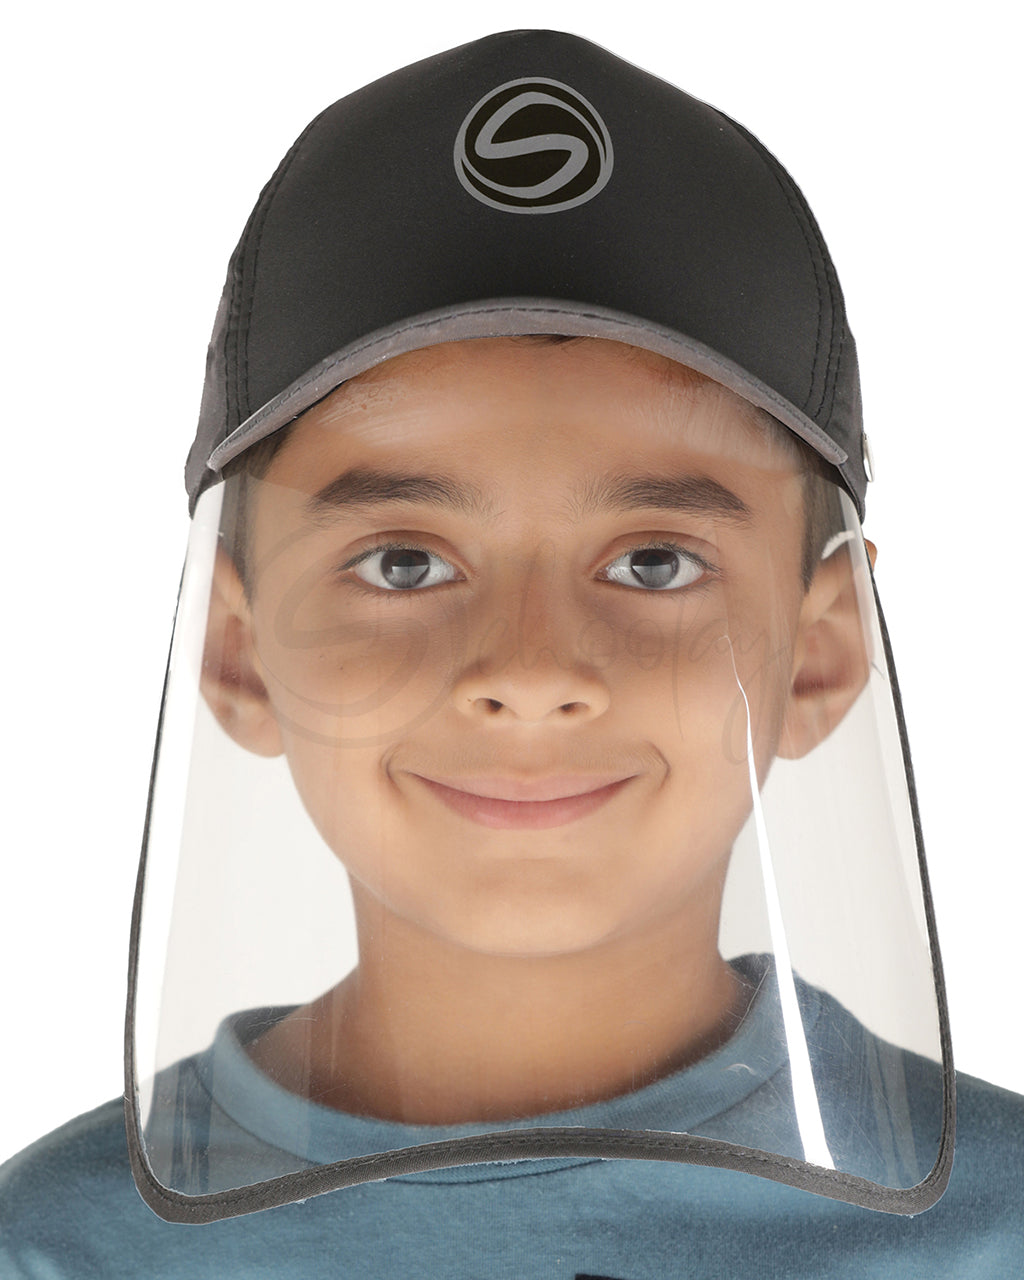 Schoolay Protective Gear - Family Pack